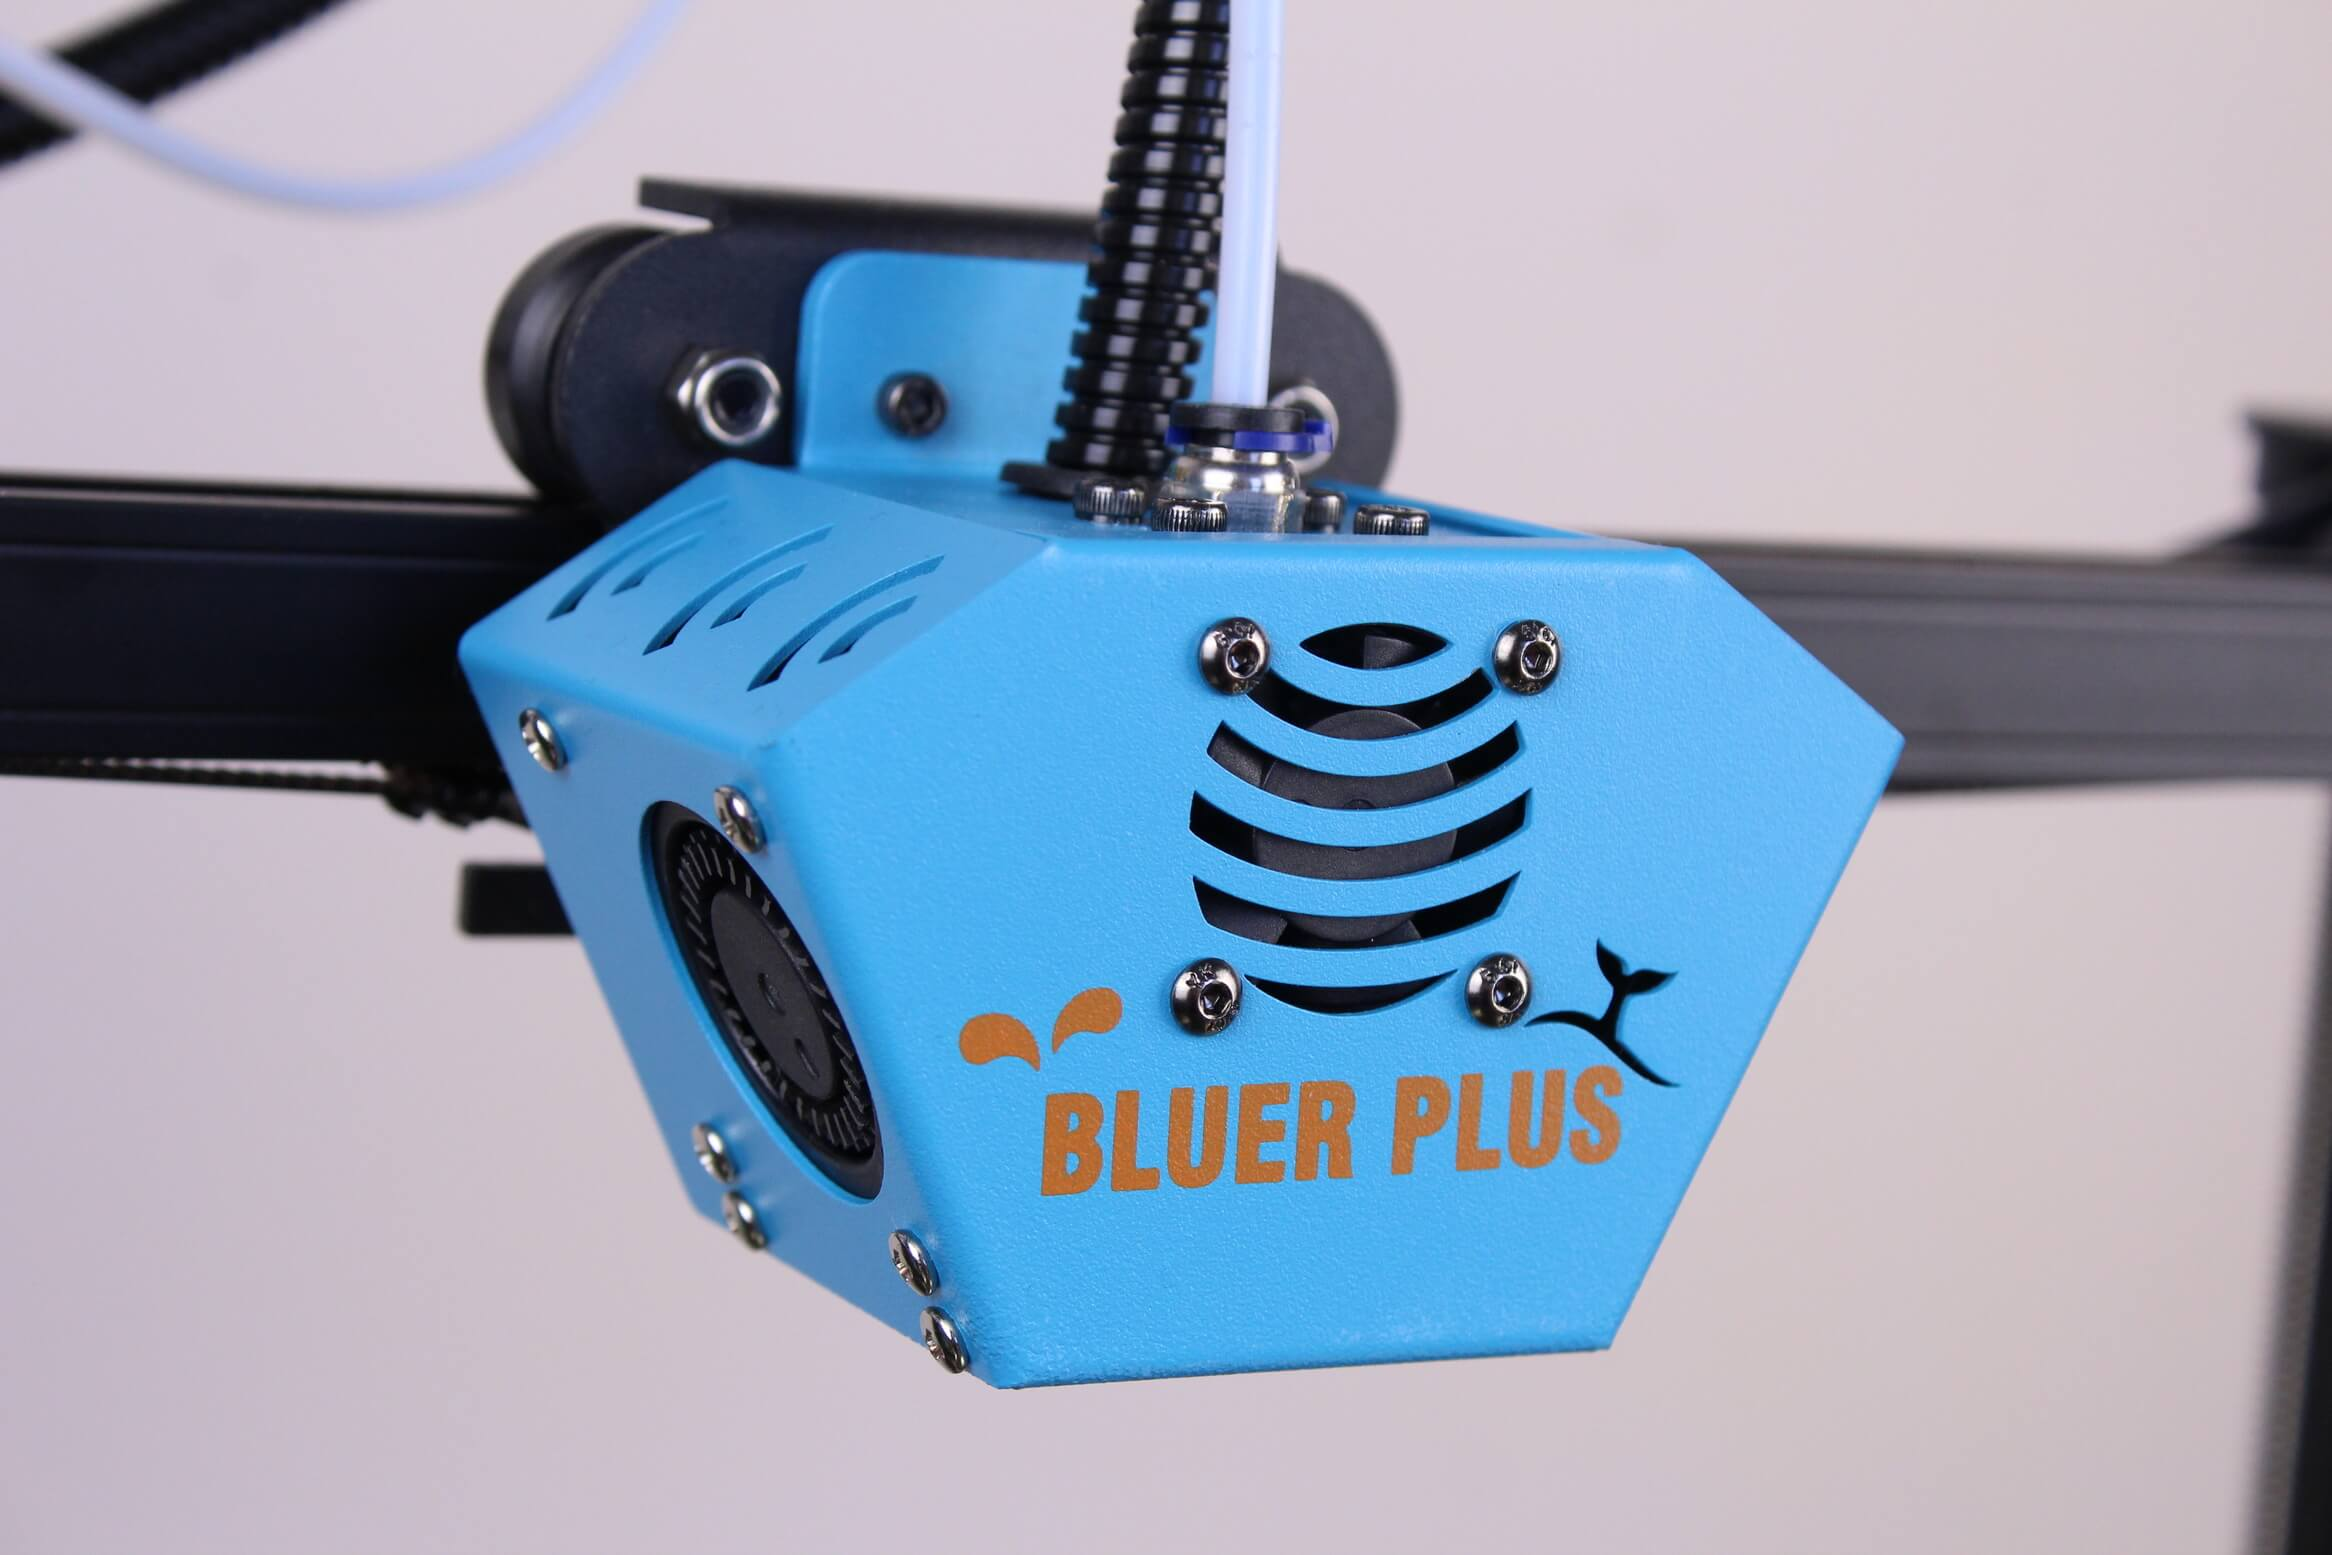 Bluer-Plus-Hotend-Assembly-2